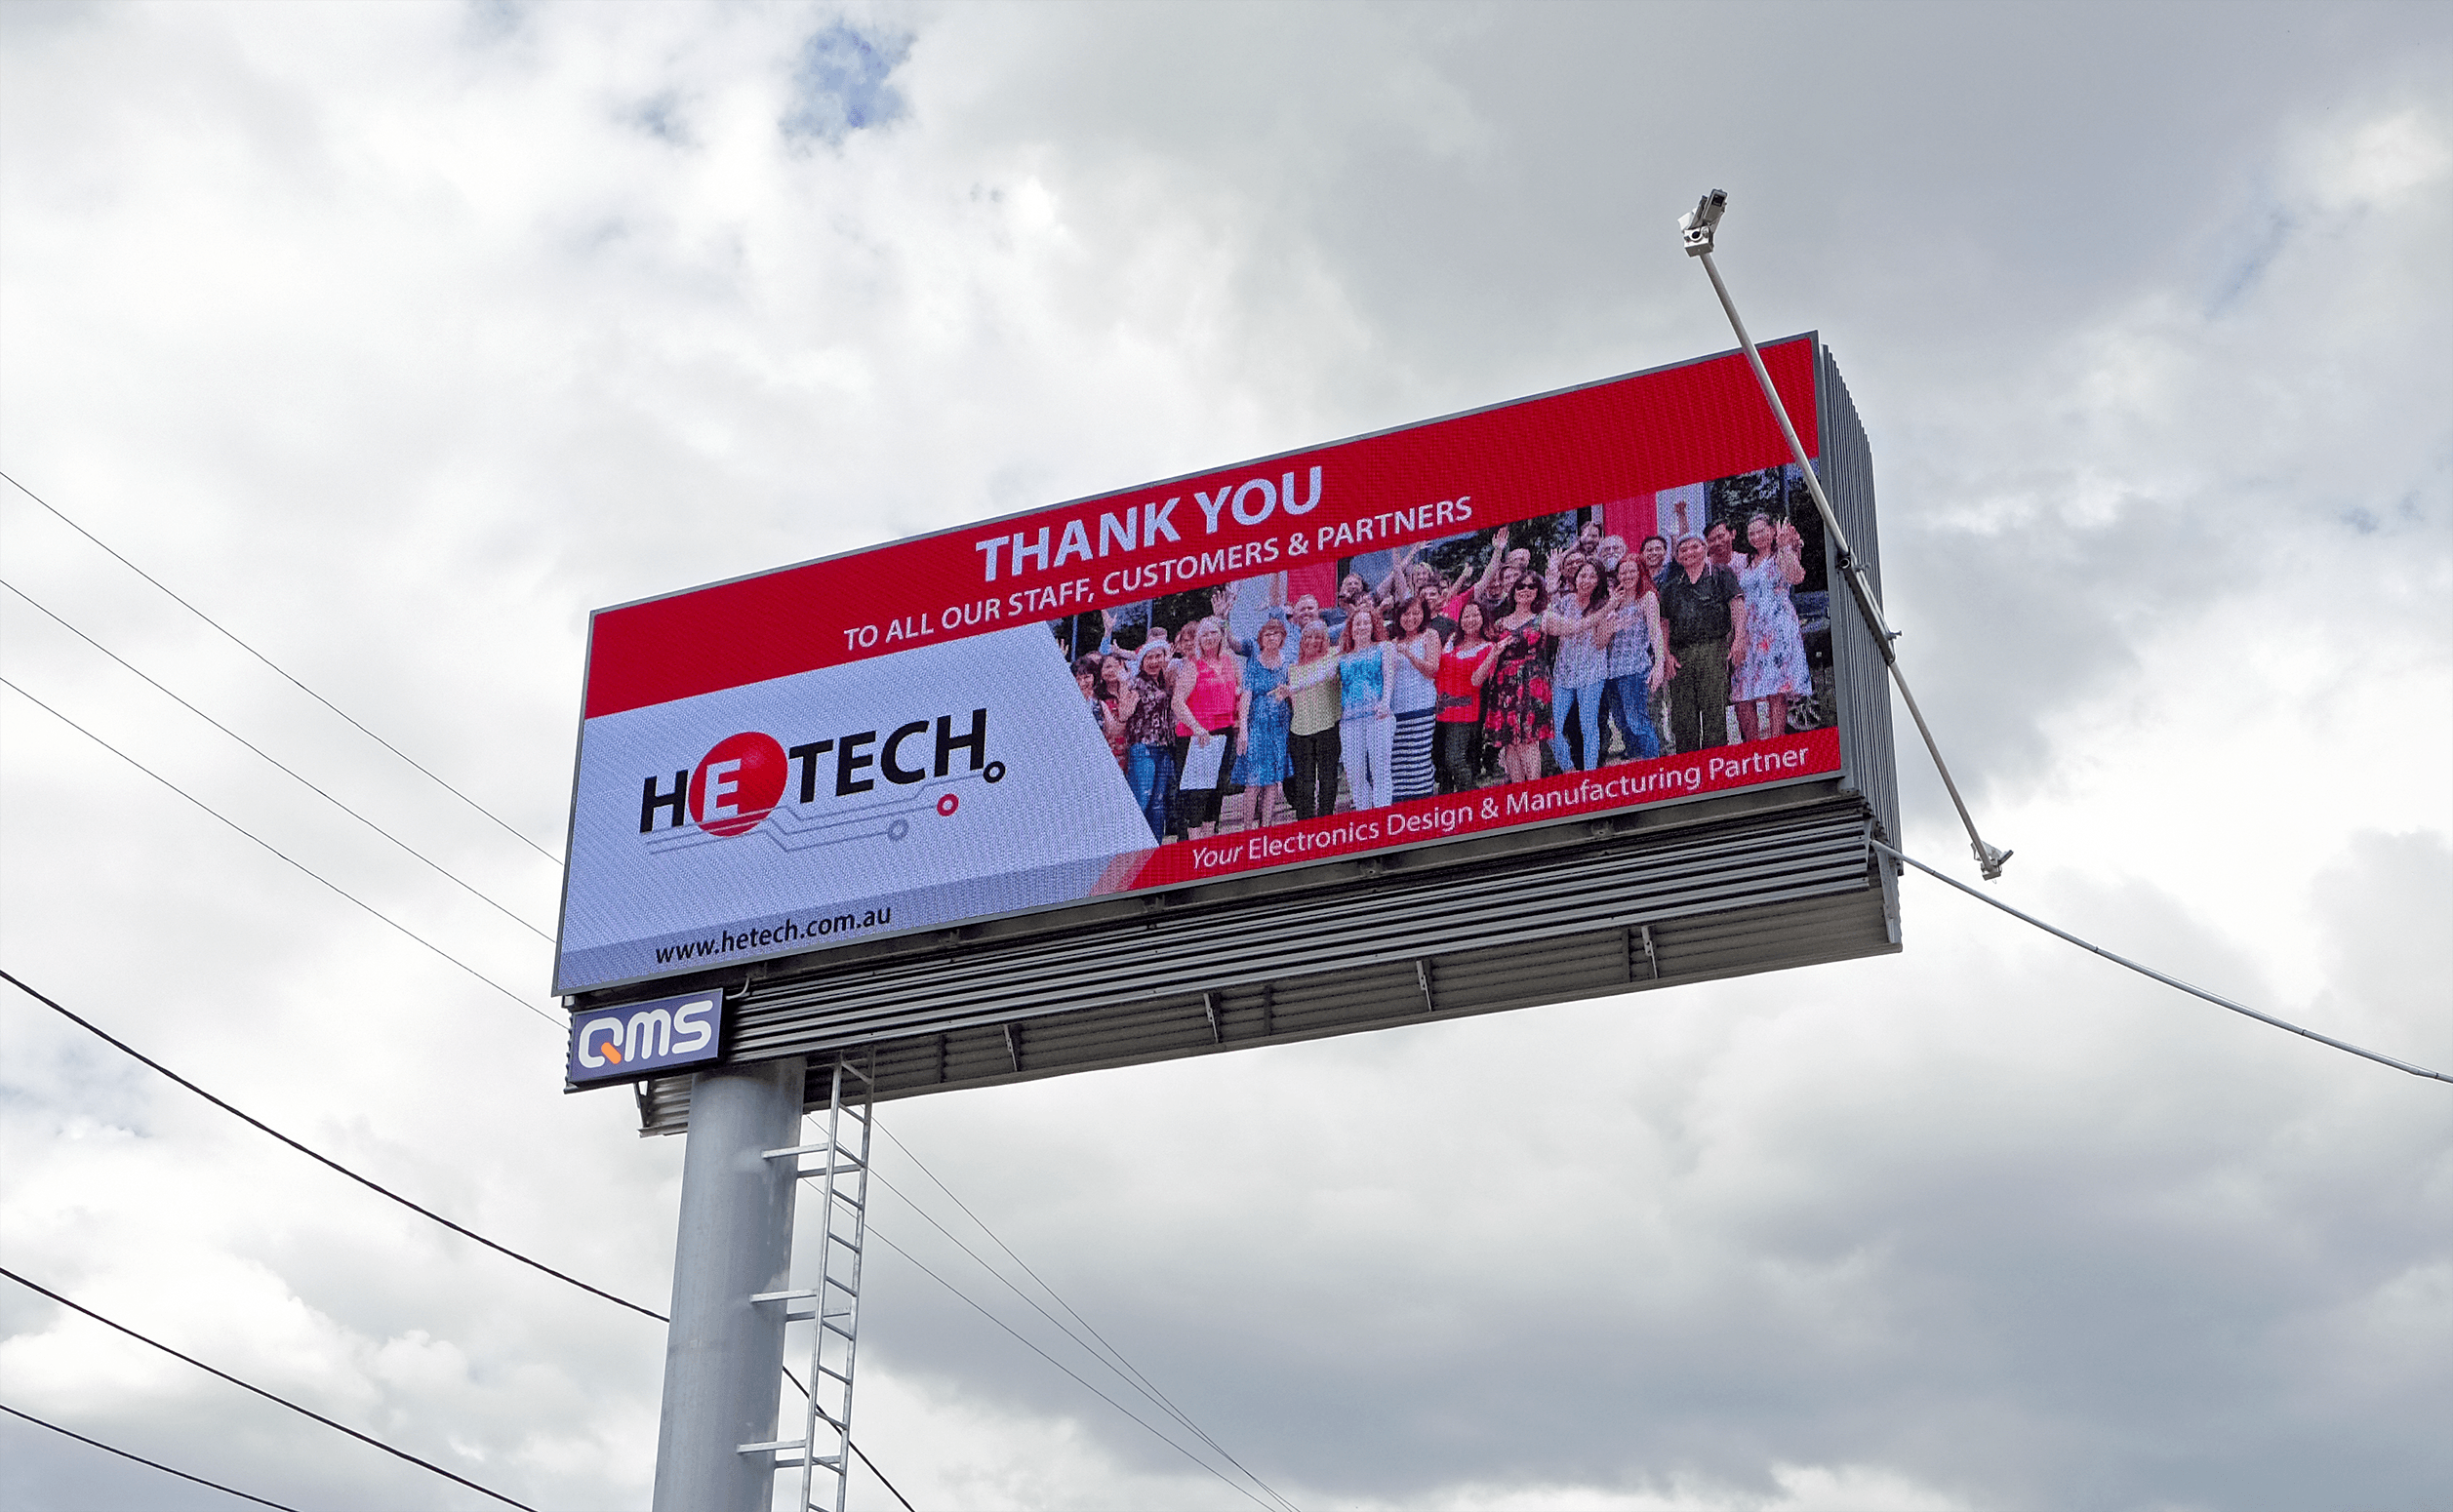 HeTech Gives Thanks With Billboard